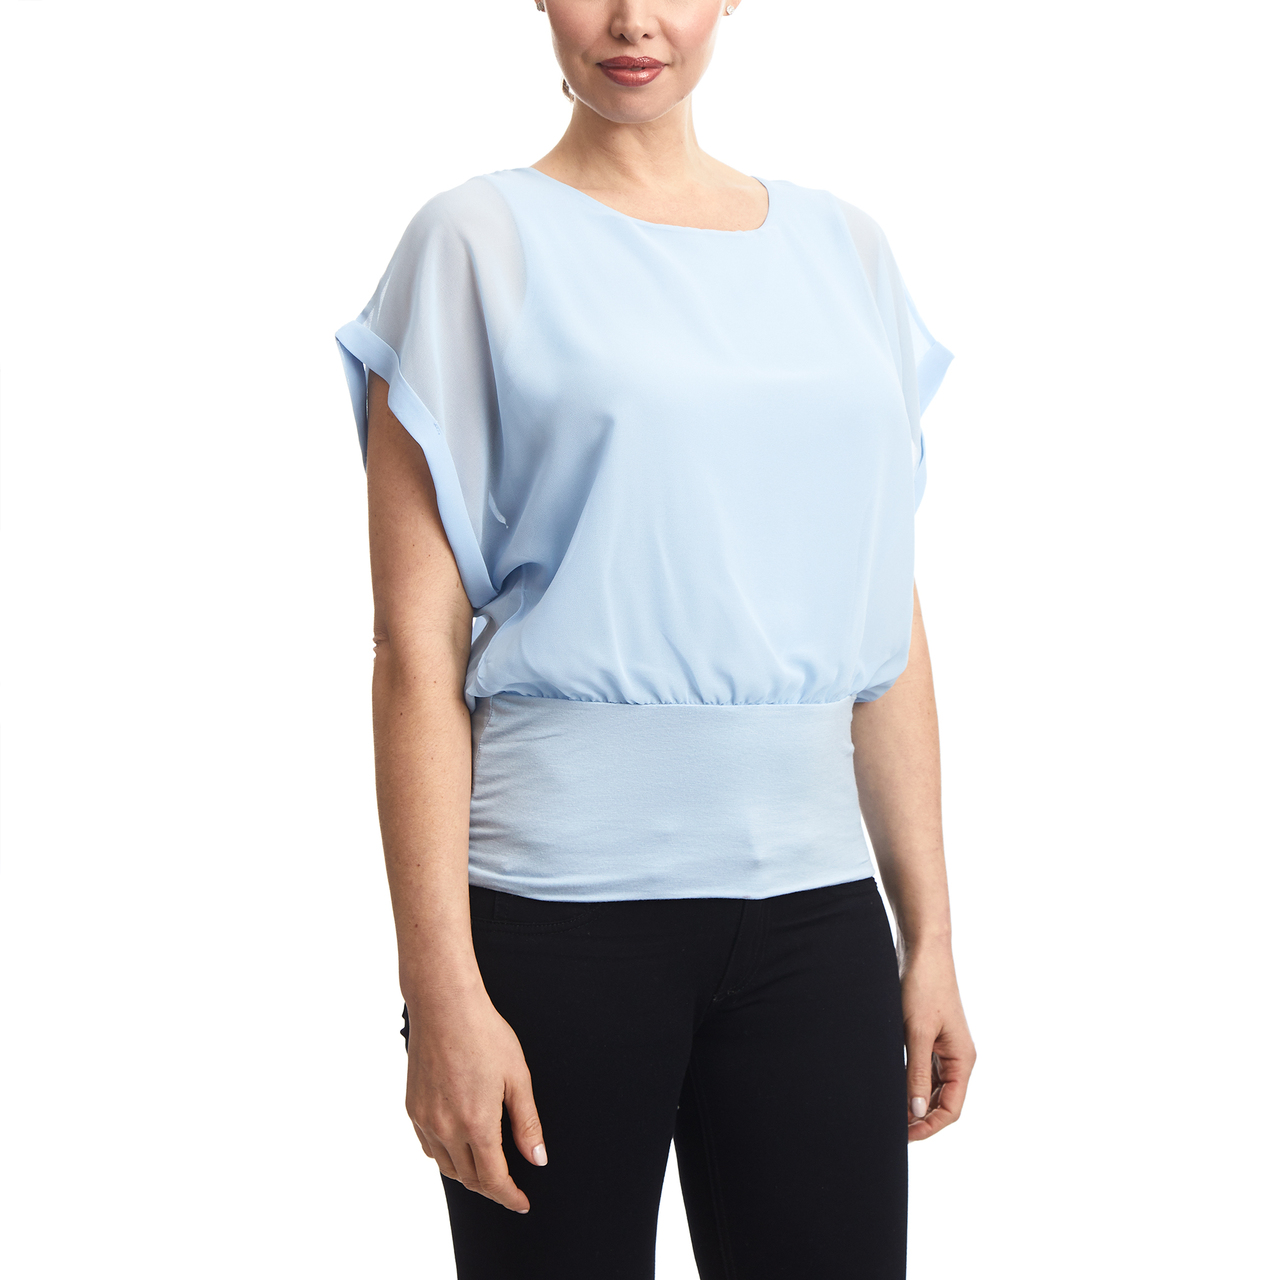 Dolman Sleeve Chiffon Top With Knit Banded Bottom In Light Blue